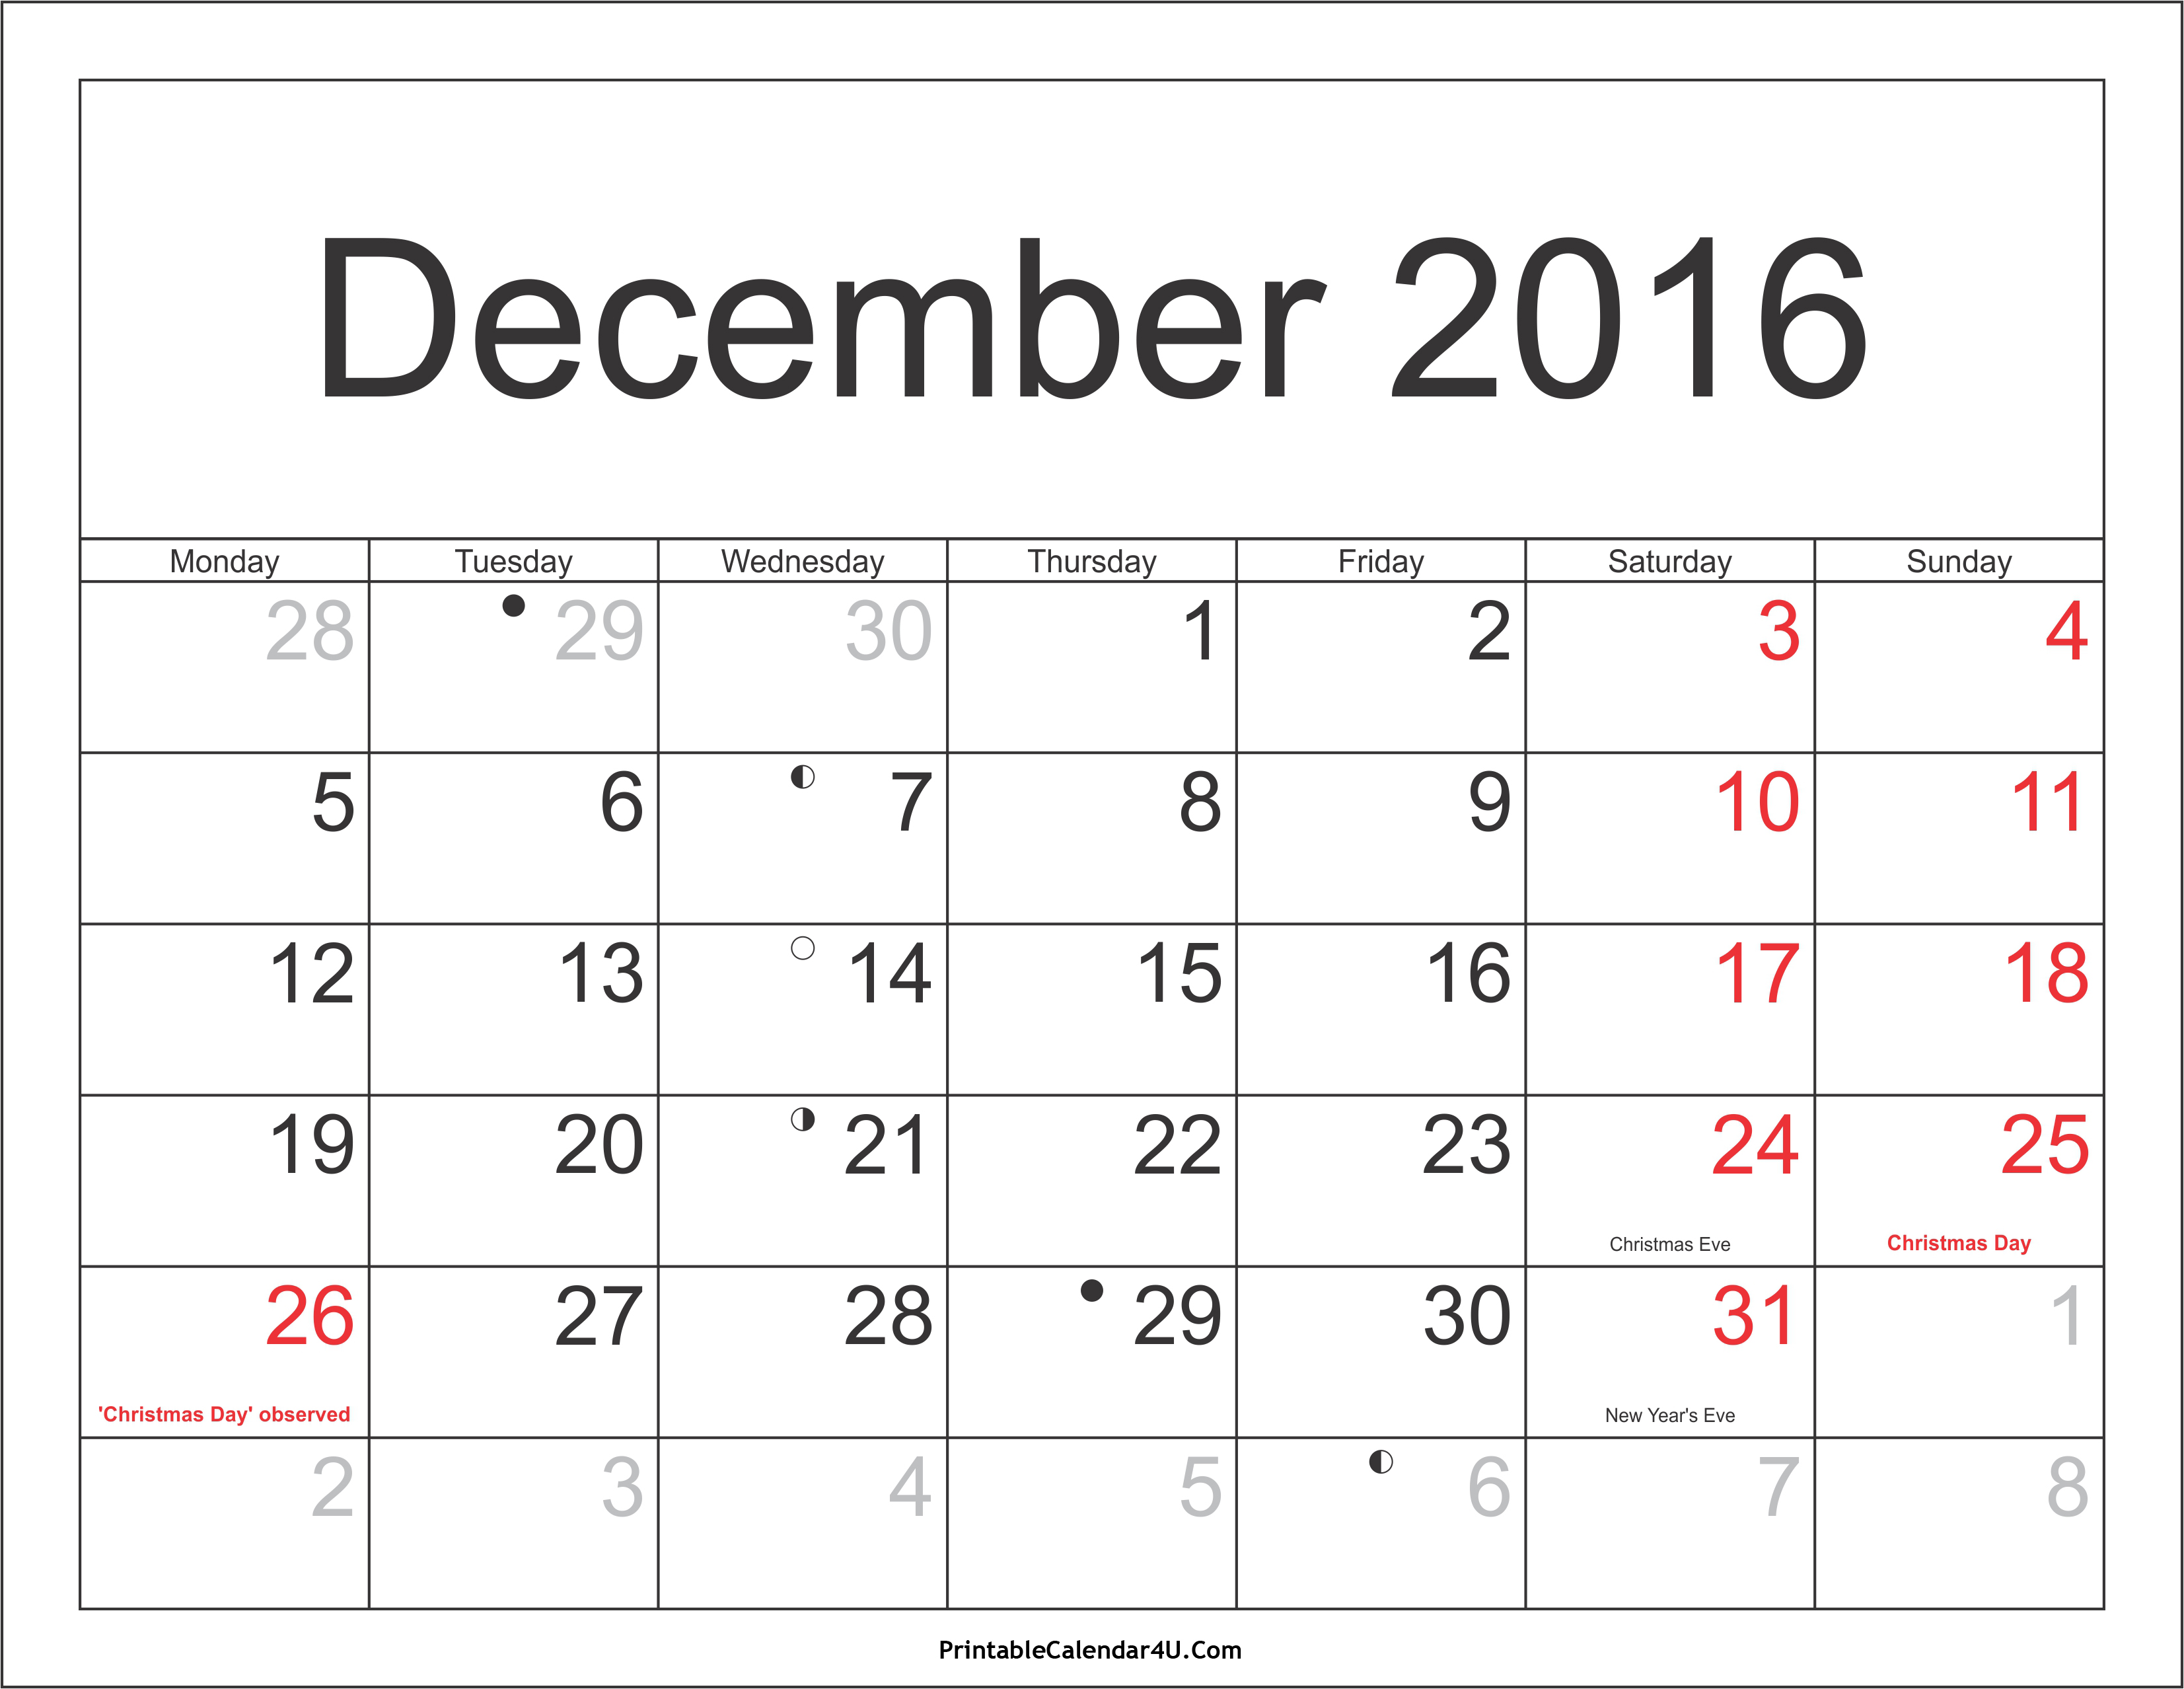 December 2016 Calendar Printable with Holidays PDF and